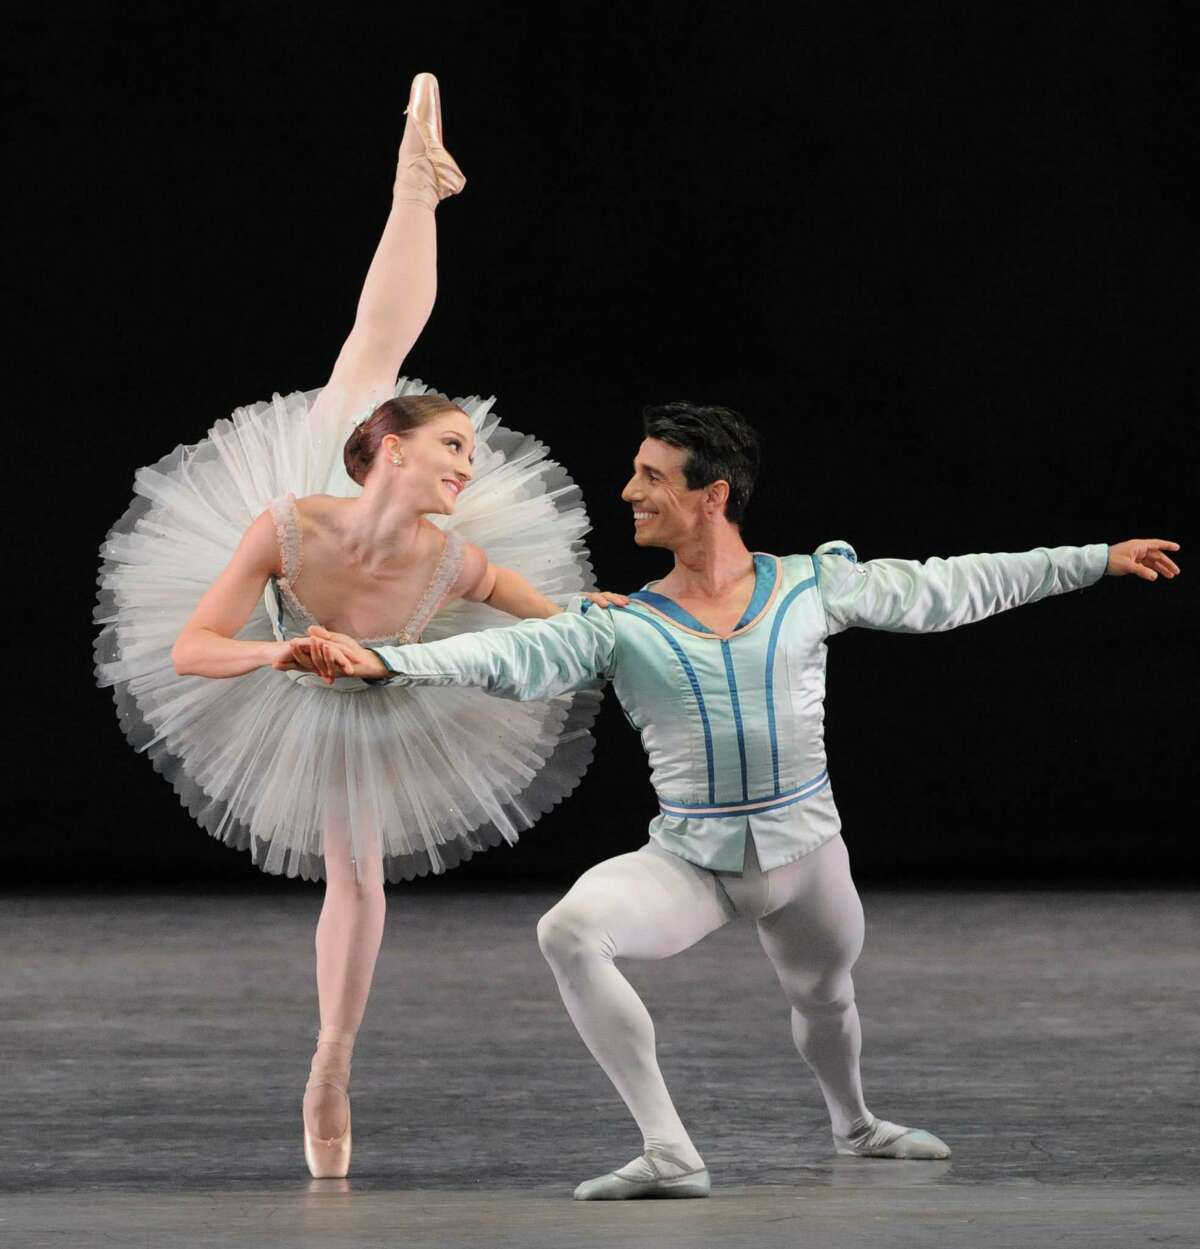 Principal dancers Asley Bouder and Joaquin De Luz dance ,Raymonda Variations, on the opening night of the New York City Ballet at SPAC on Tuesday July 8, 2014 in Saratoga Springs, N.Y. (Michael P. Farrell/Times Union)